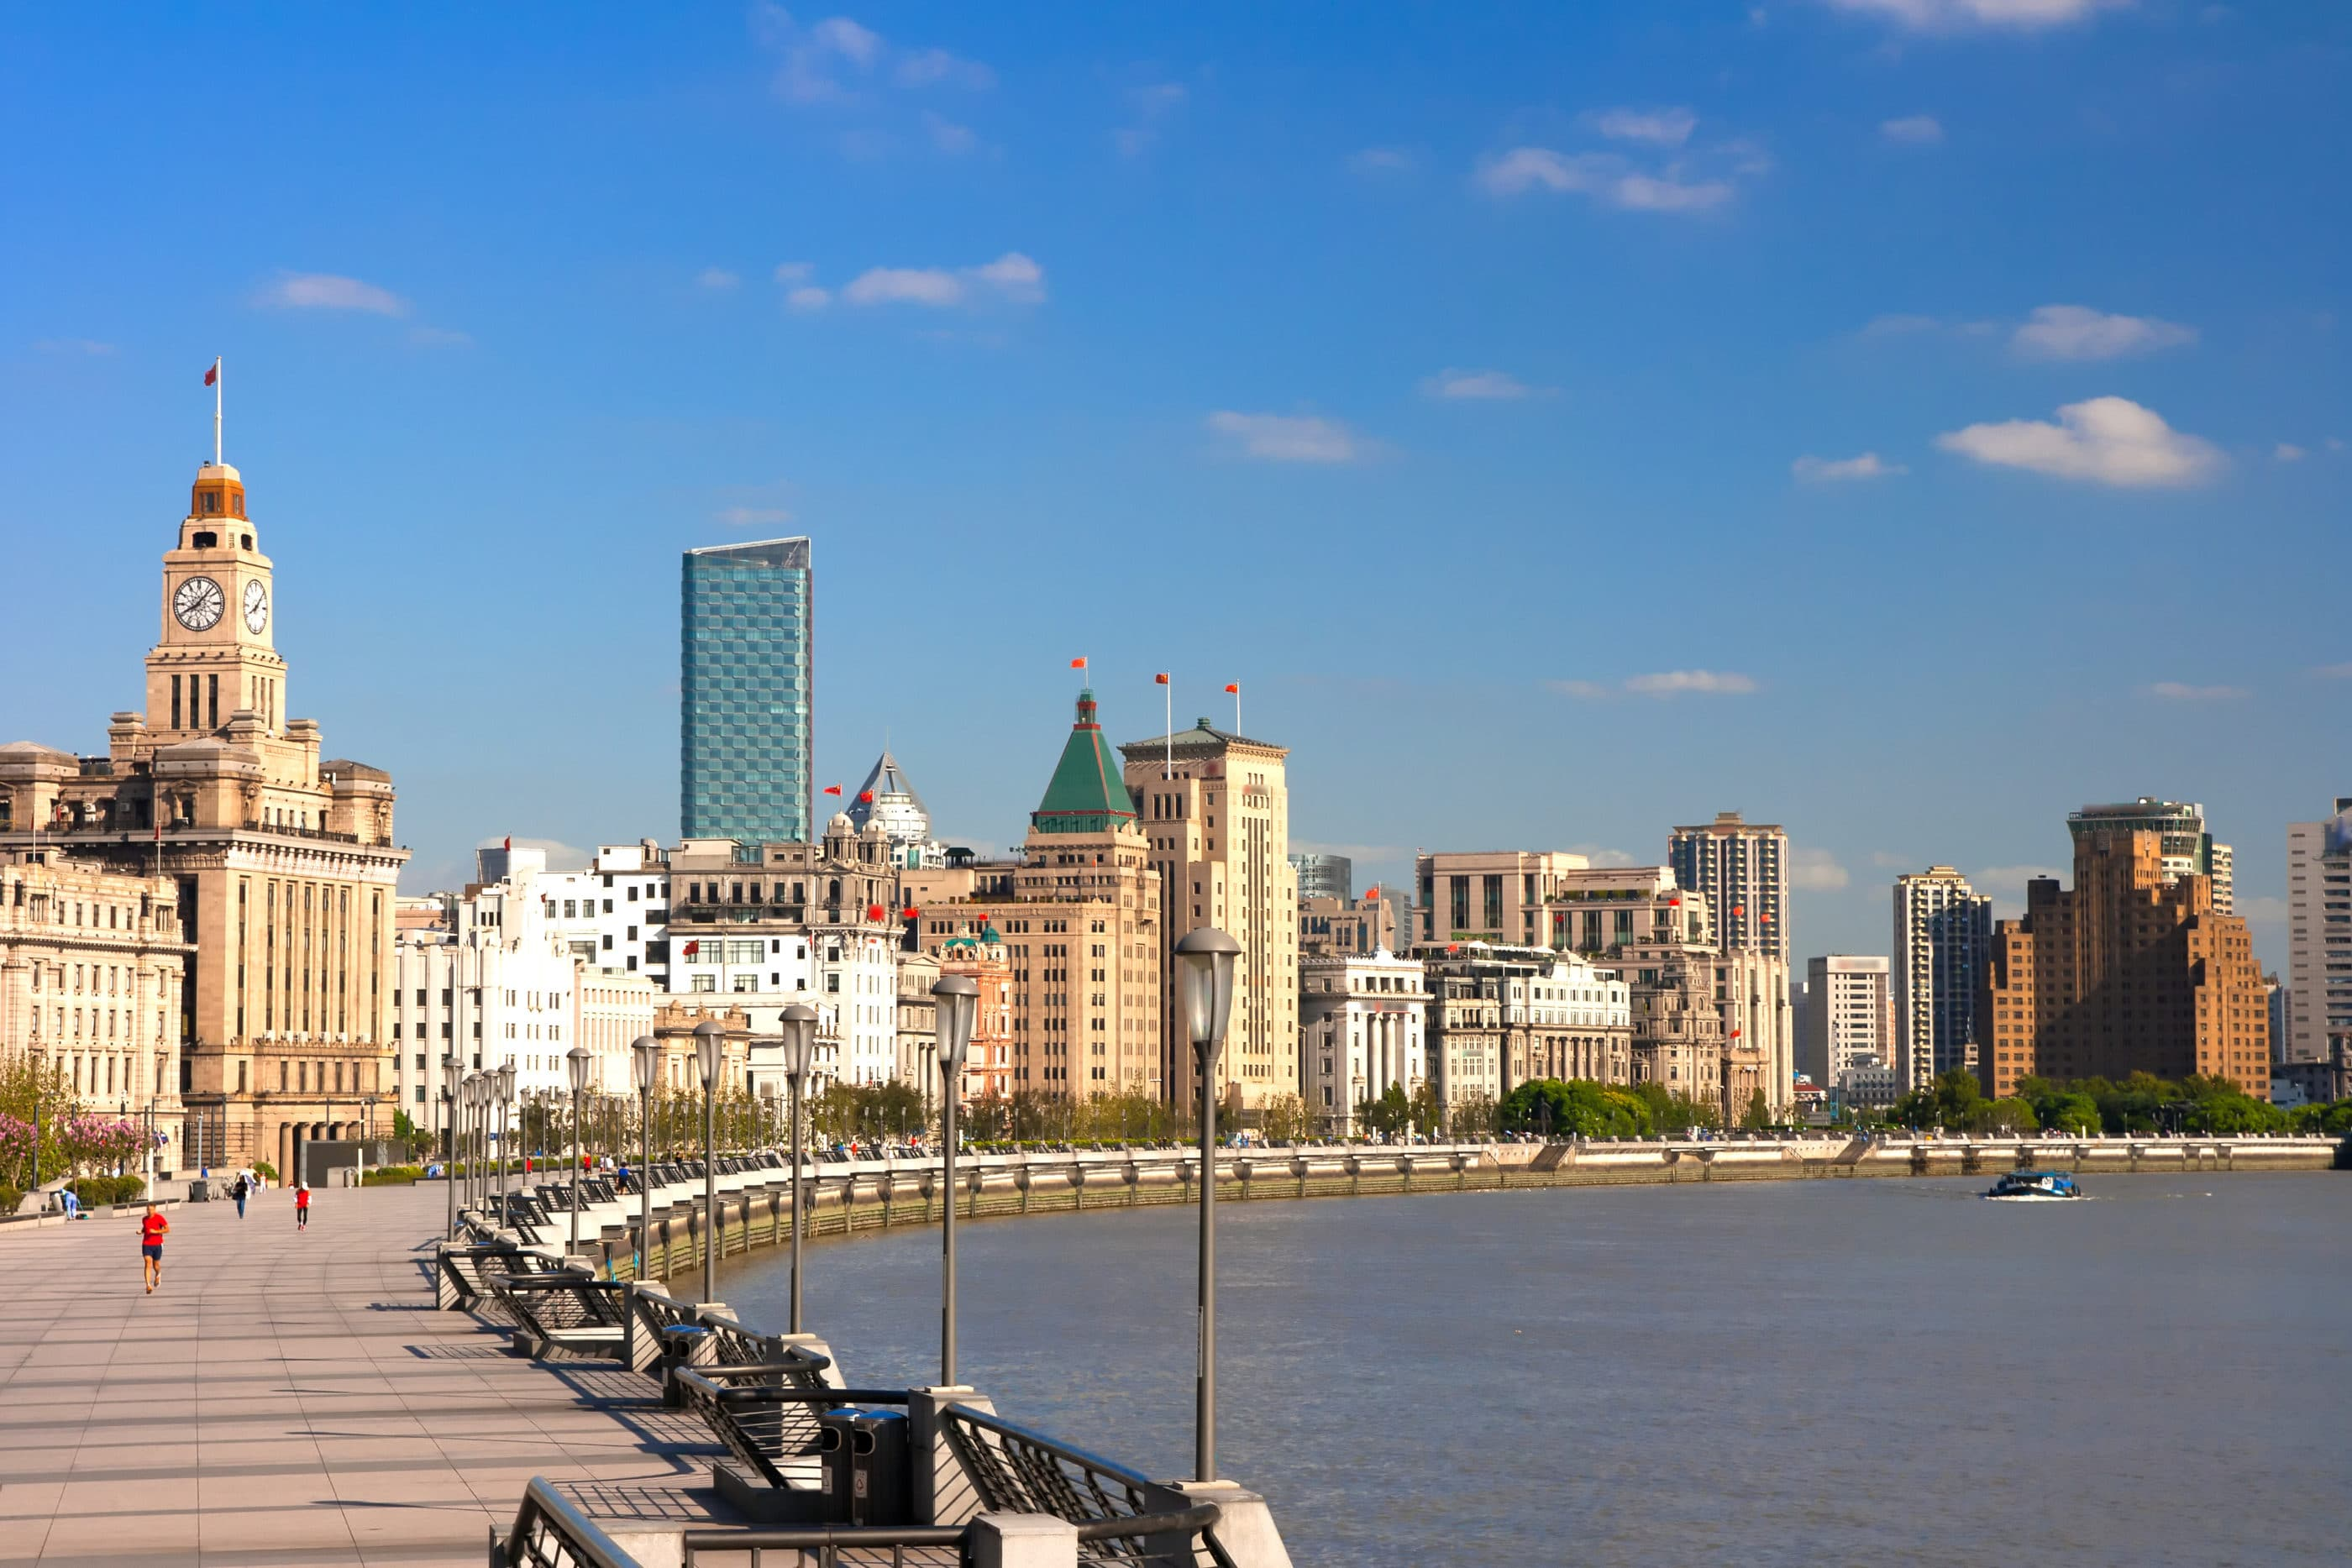 Things to do in Shanghai: The Bund